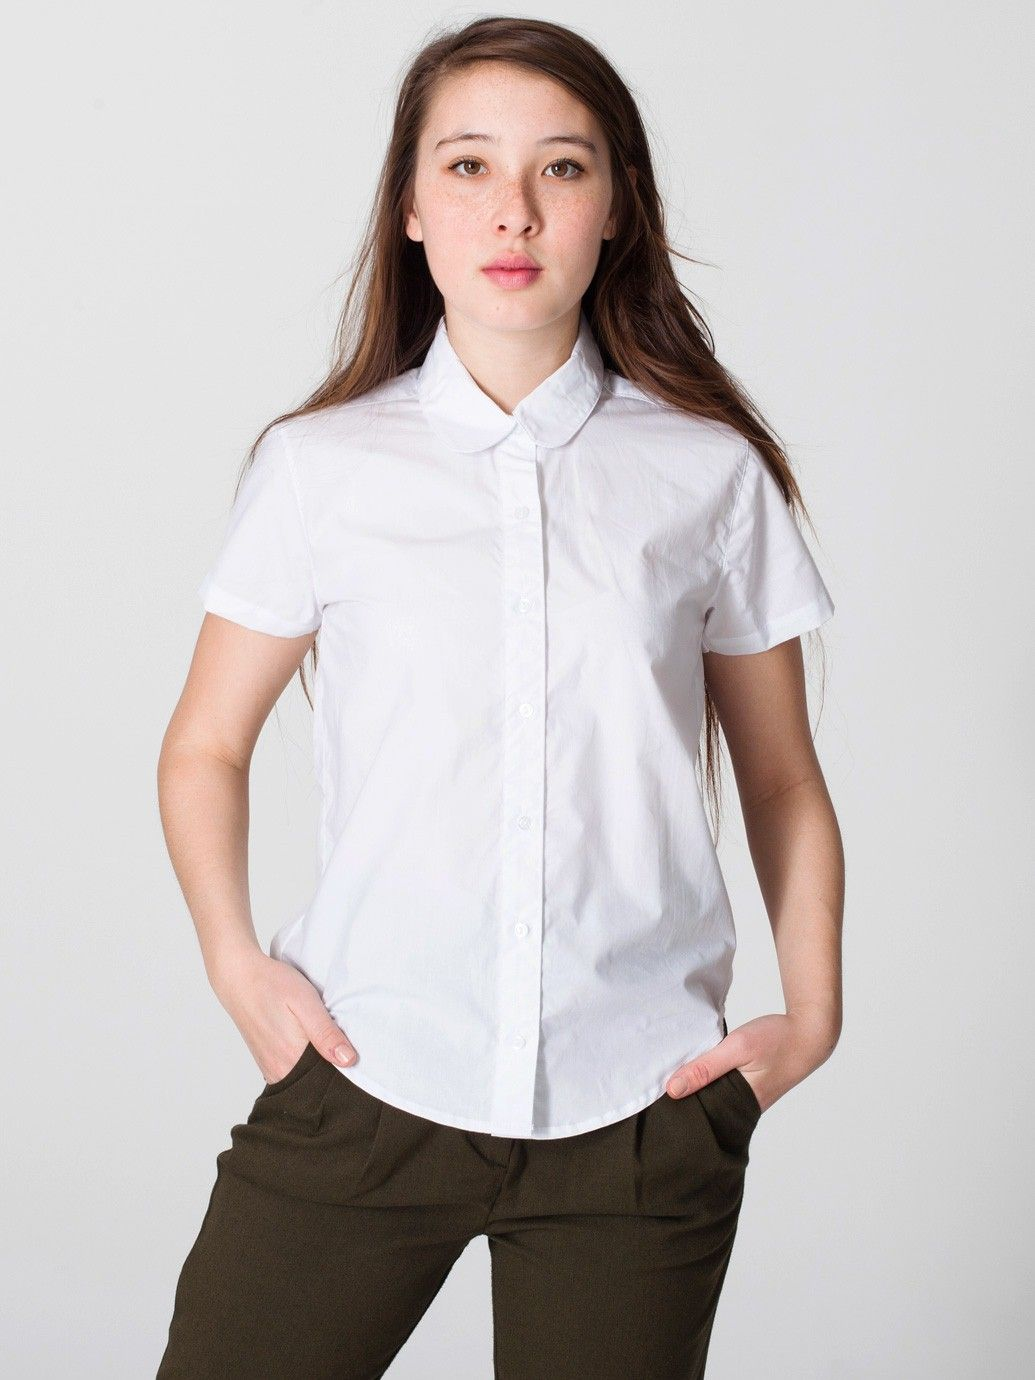 Poplin Round Collar Short Sleeve Button Up Short Sleeves